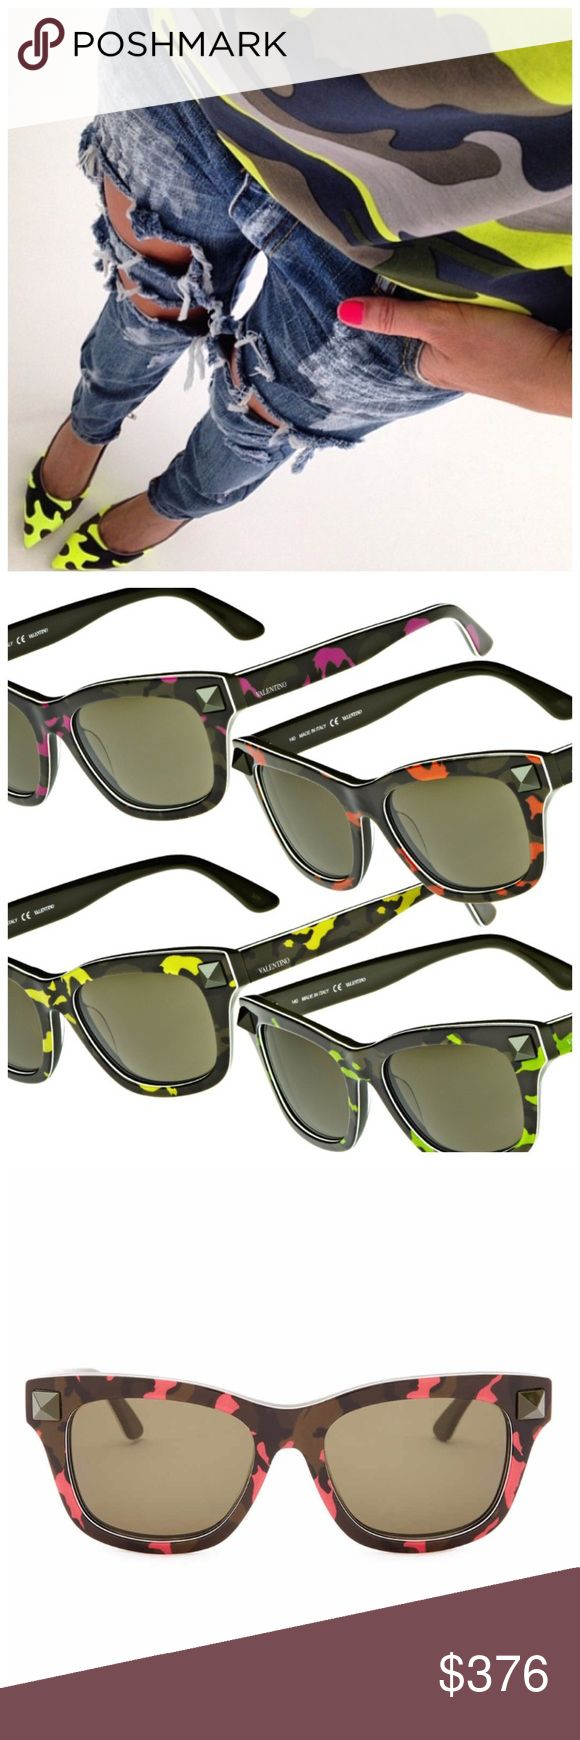 "Sale! Valentino Rockstud Camo Wayfarers [fushia] Valentino Rockstud Camo Wayfarer Sunglasses from Spring Summer 2014 collection. Anyone currently selling these ""retail"" must shop in a Velorian. Deets: Signature Rockstud accents and cool camo patterning elevate retro-chic Italian sunglasses finished with logo inlays at the temples. Measurements: 53-18-140mm (eye-bridge-temple). Frame Color: Camo with Studs: Fuchsia. Lens Color: Green. Frame Material: Acetate. Lens Type: Plastic Submit an…"